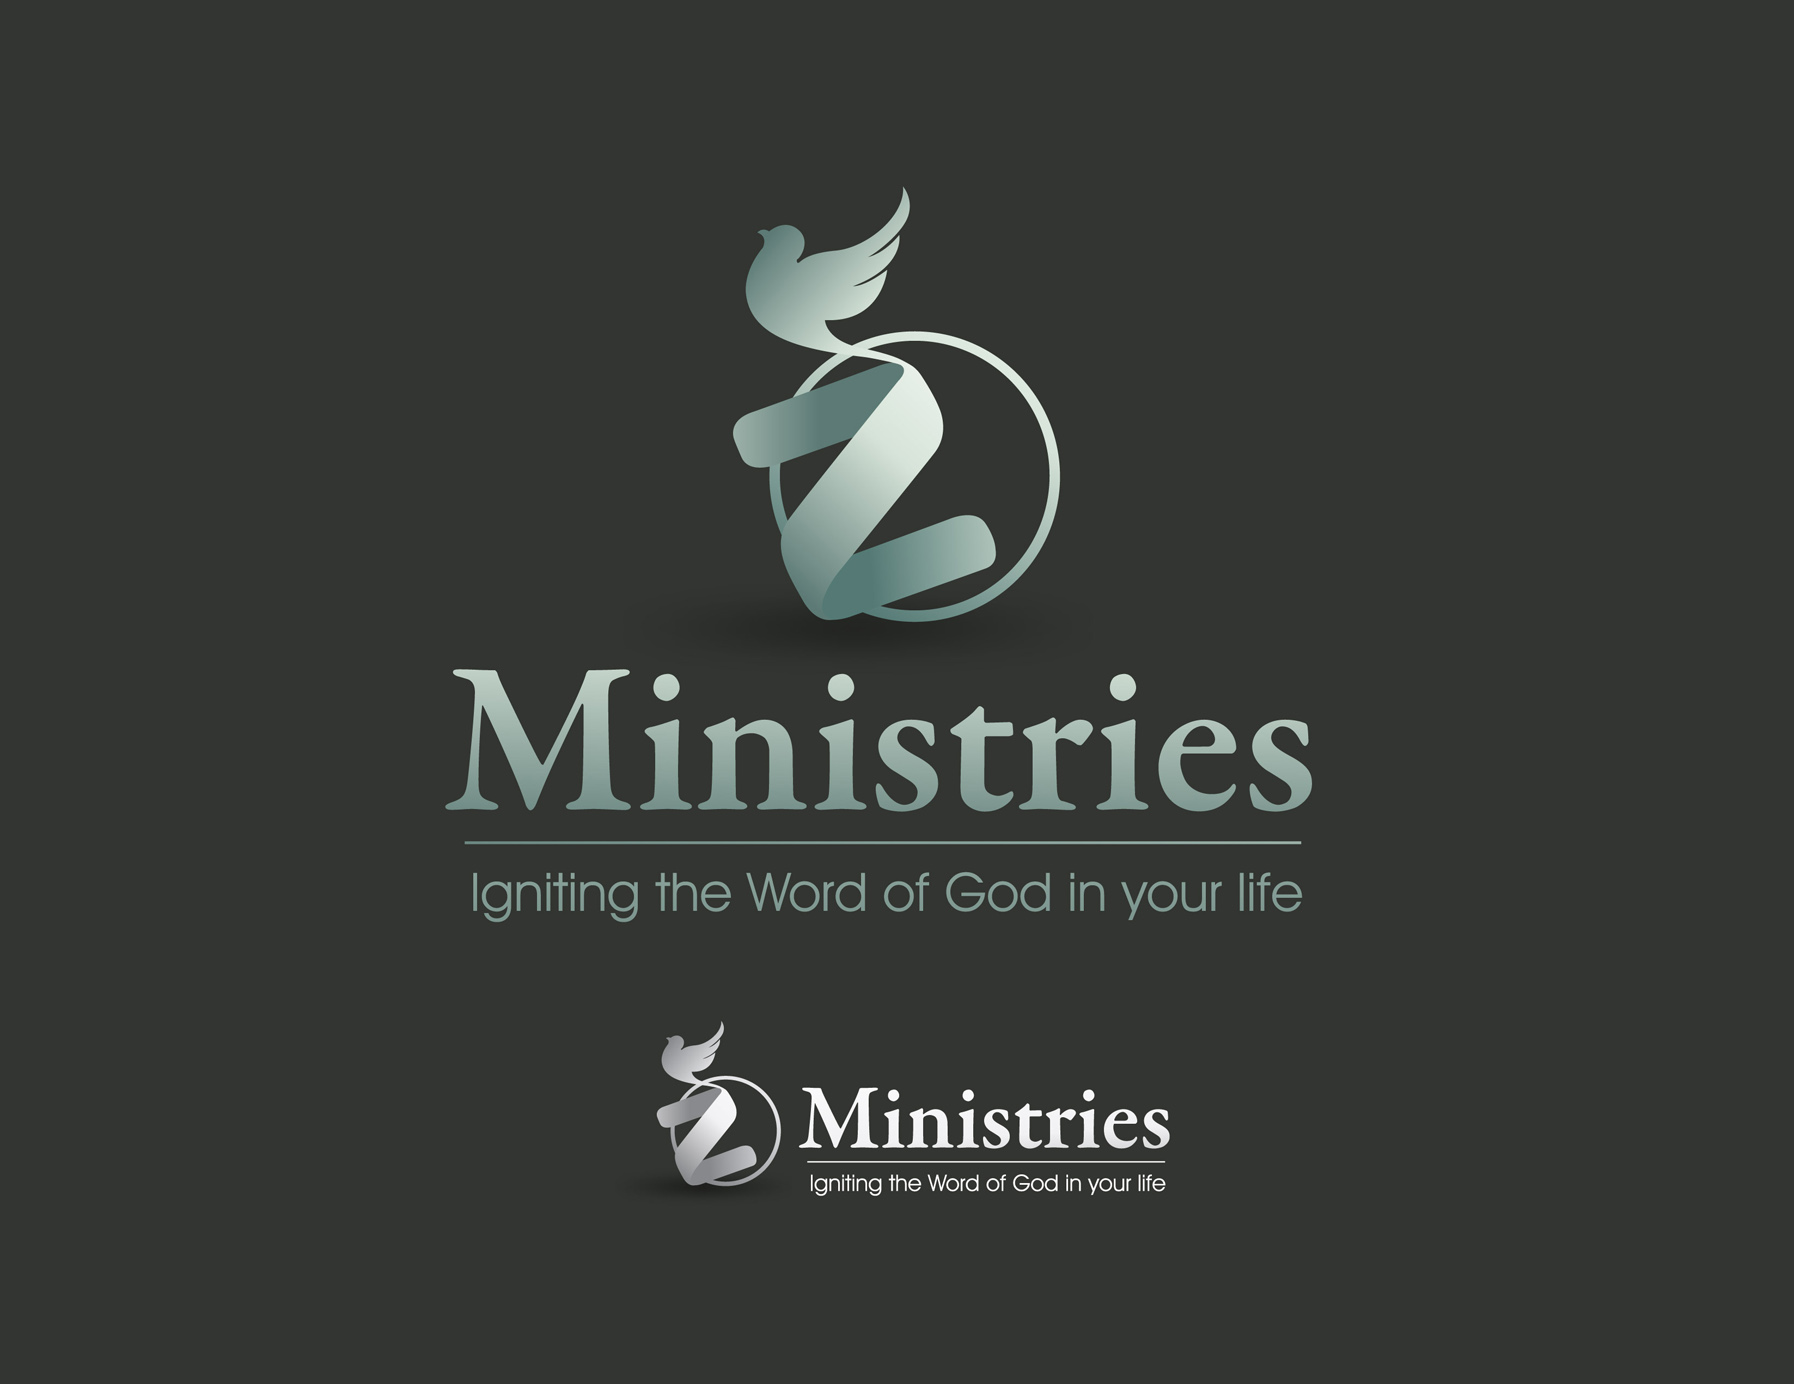 Logo Design by Mark Anthony Moreto Jordan - Entry No. 39 in the Logo Design Contest Artistic Logo Design for Z Ministries.